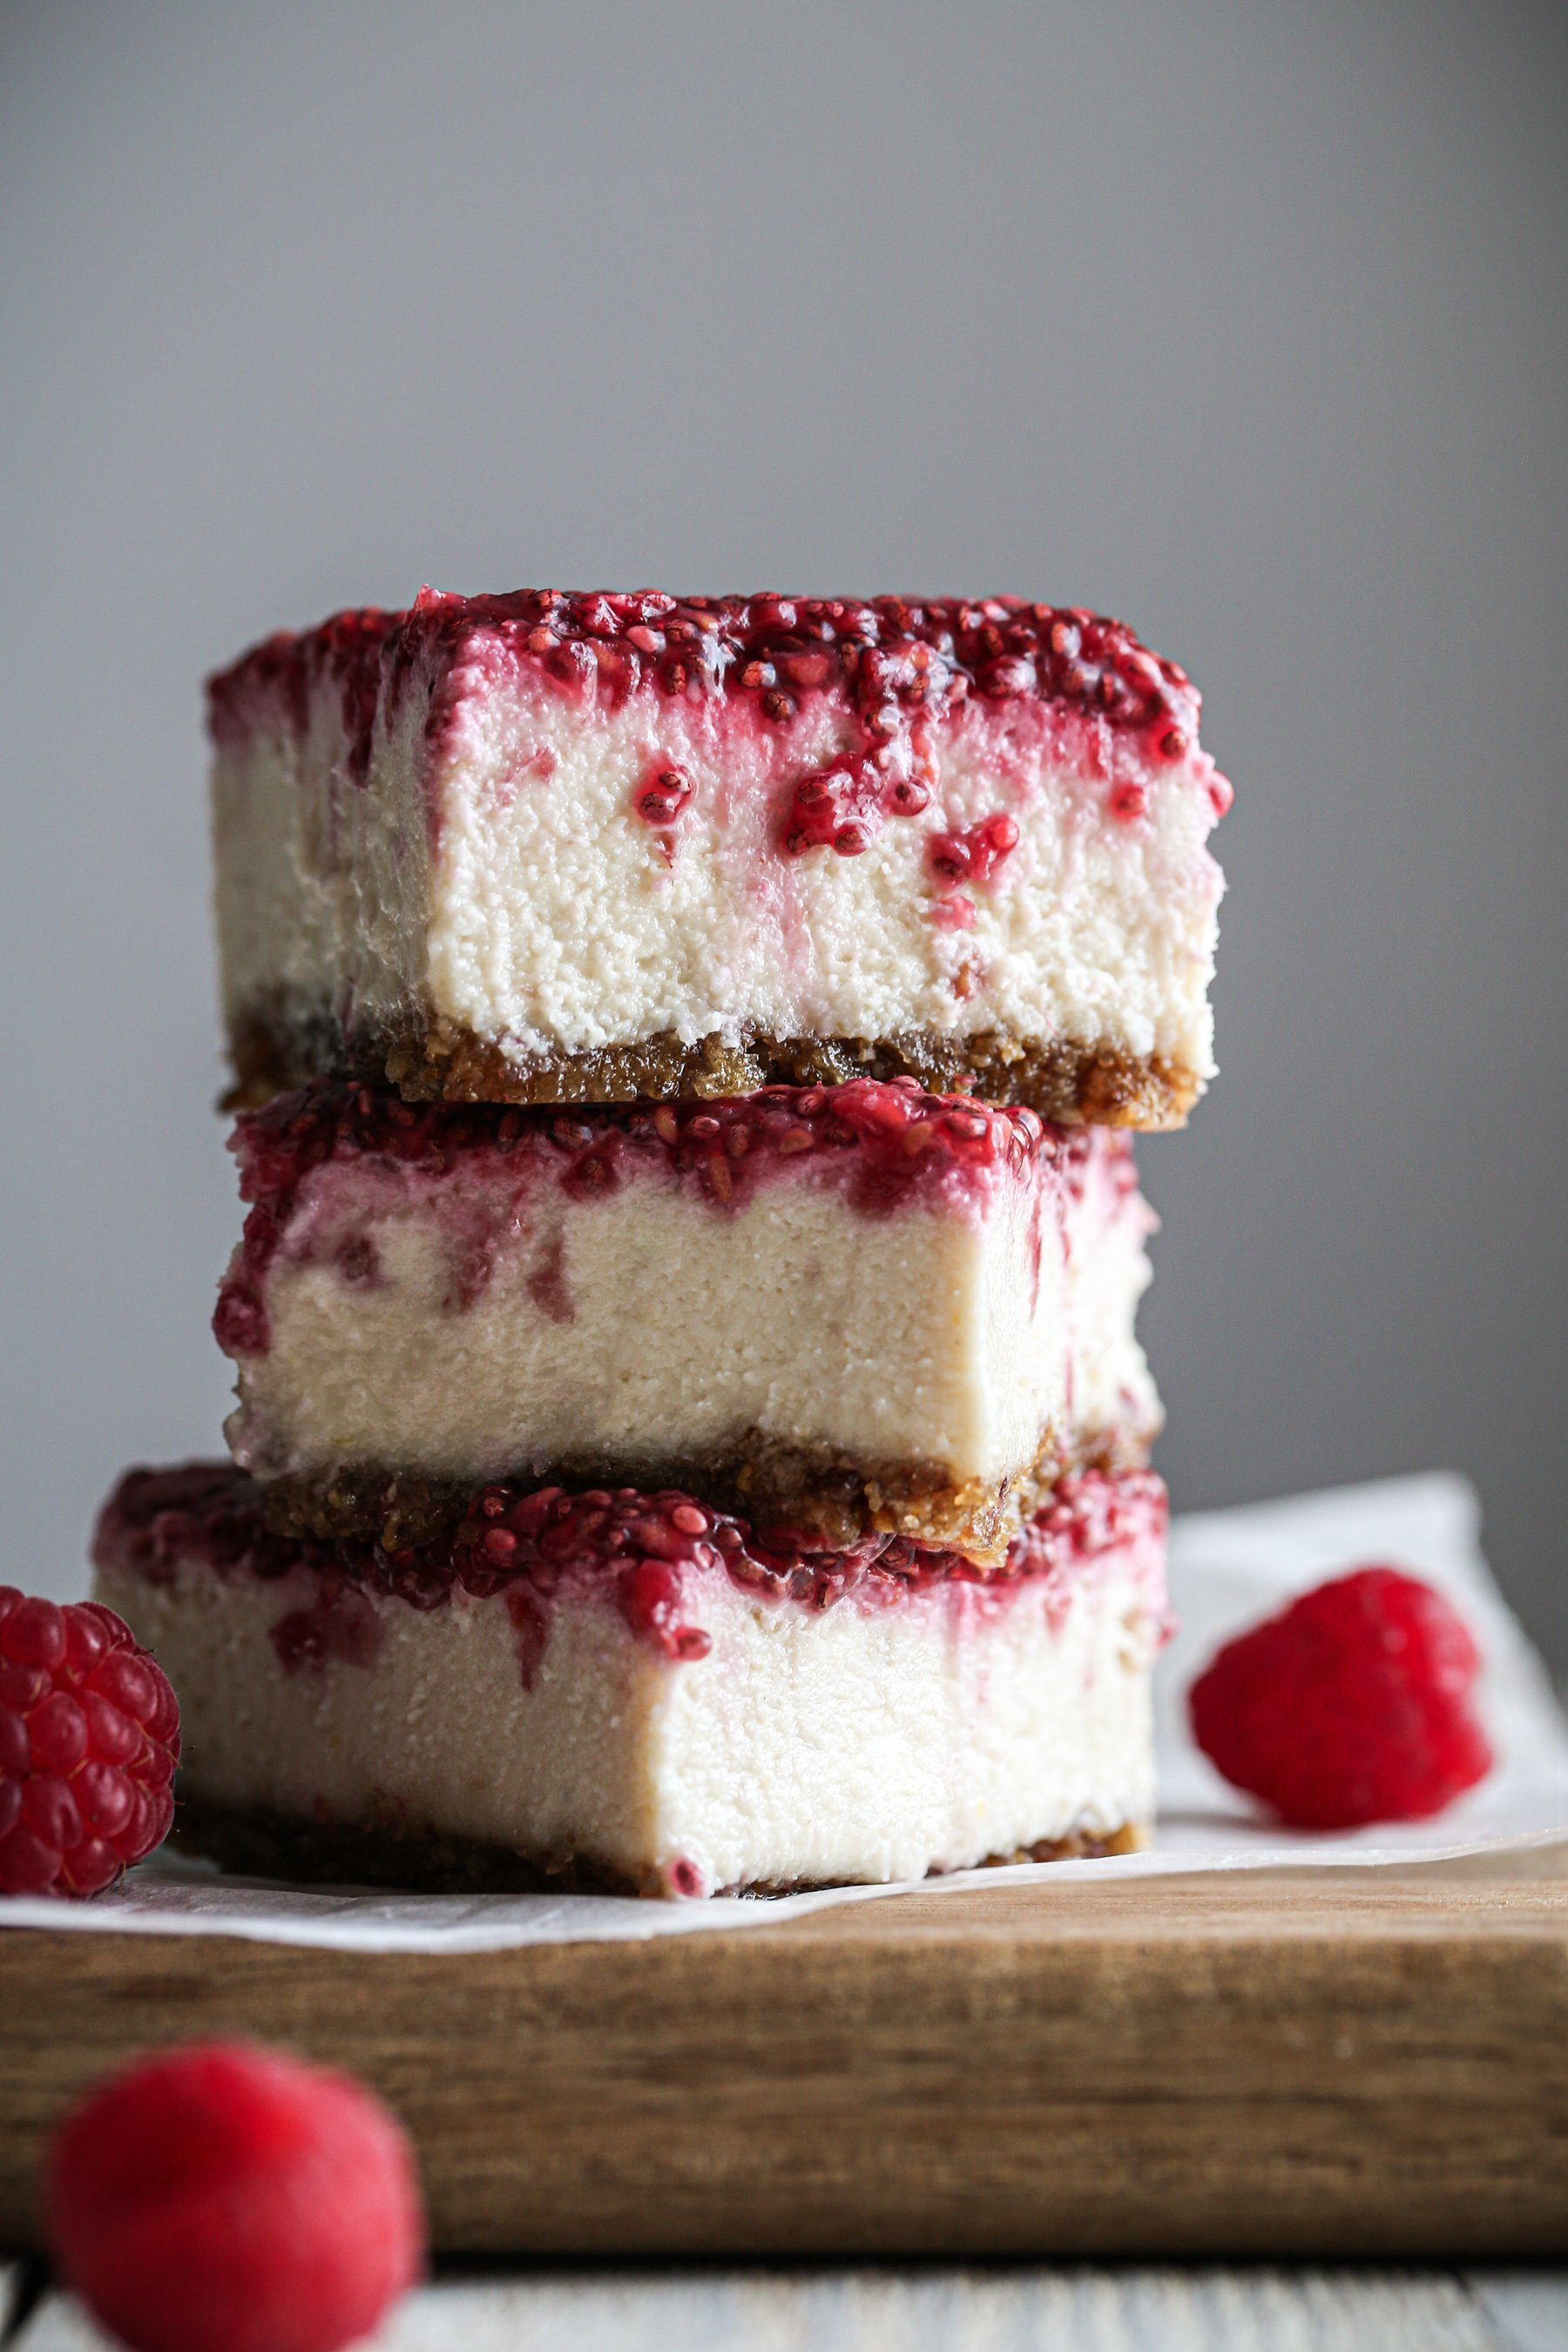 Vegan Lemon Raspberry No-Bake Bars | Gluten, dairy, and refined sugar free